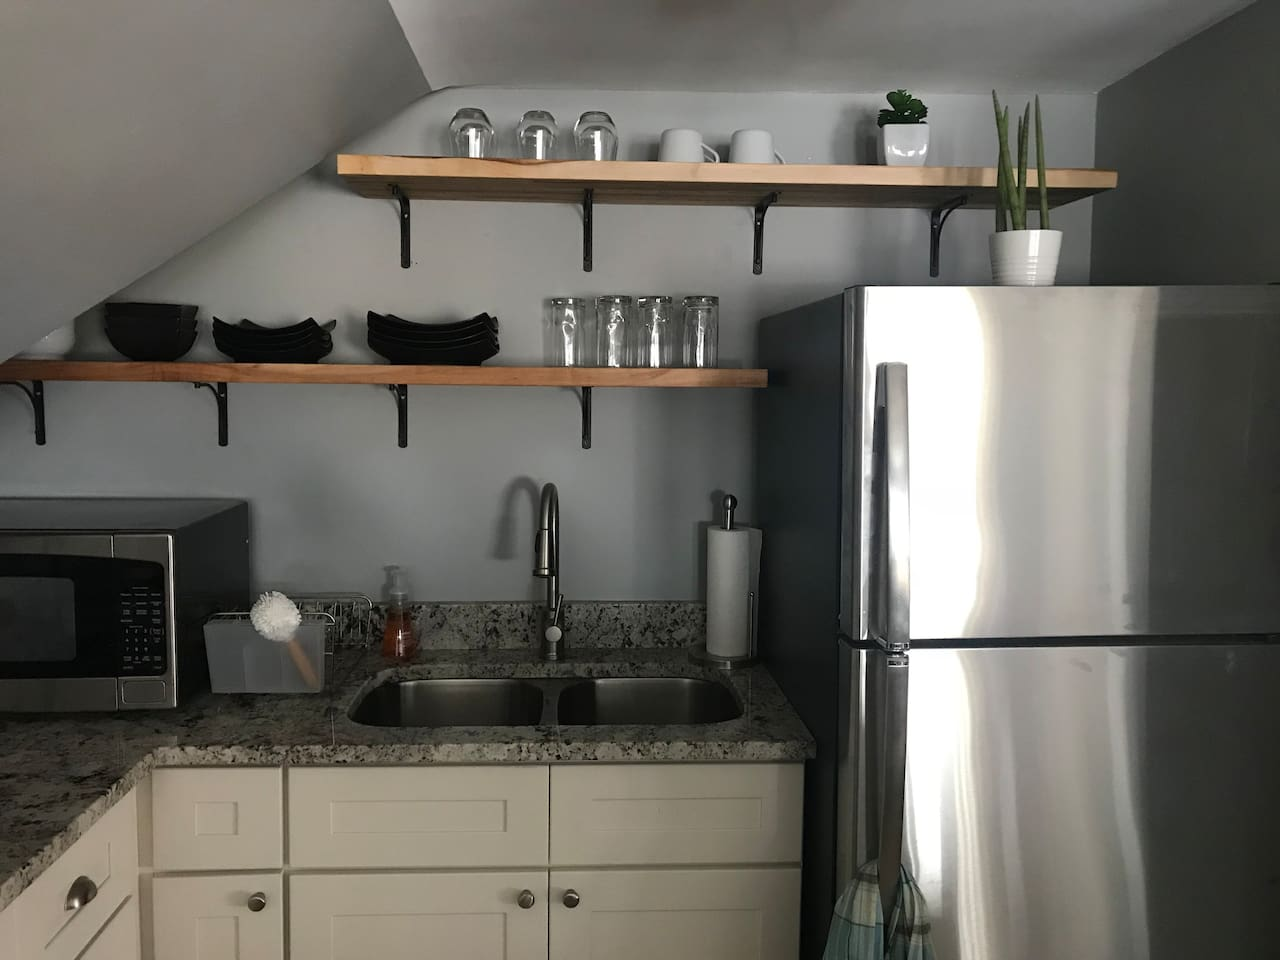 Brand new kitchen!  Beautiful everything!  Fridge, gas stove, microwave and coffee maker.